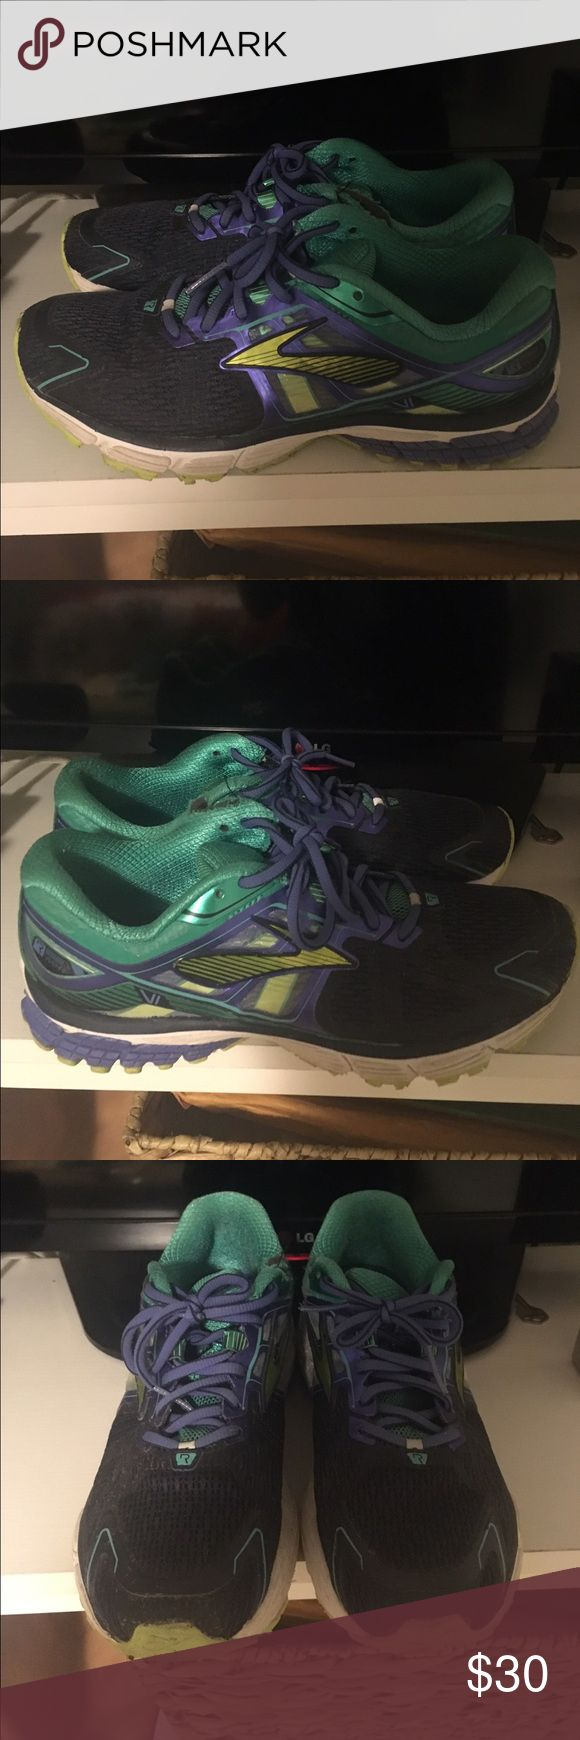 Brooks running shoes Size 9.5 brooks running shoes! So comfortable and supportive just a little small on me. Brooks Shoes Athletic Shoes